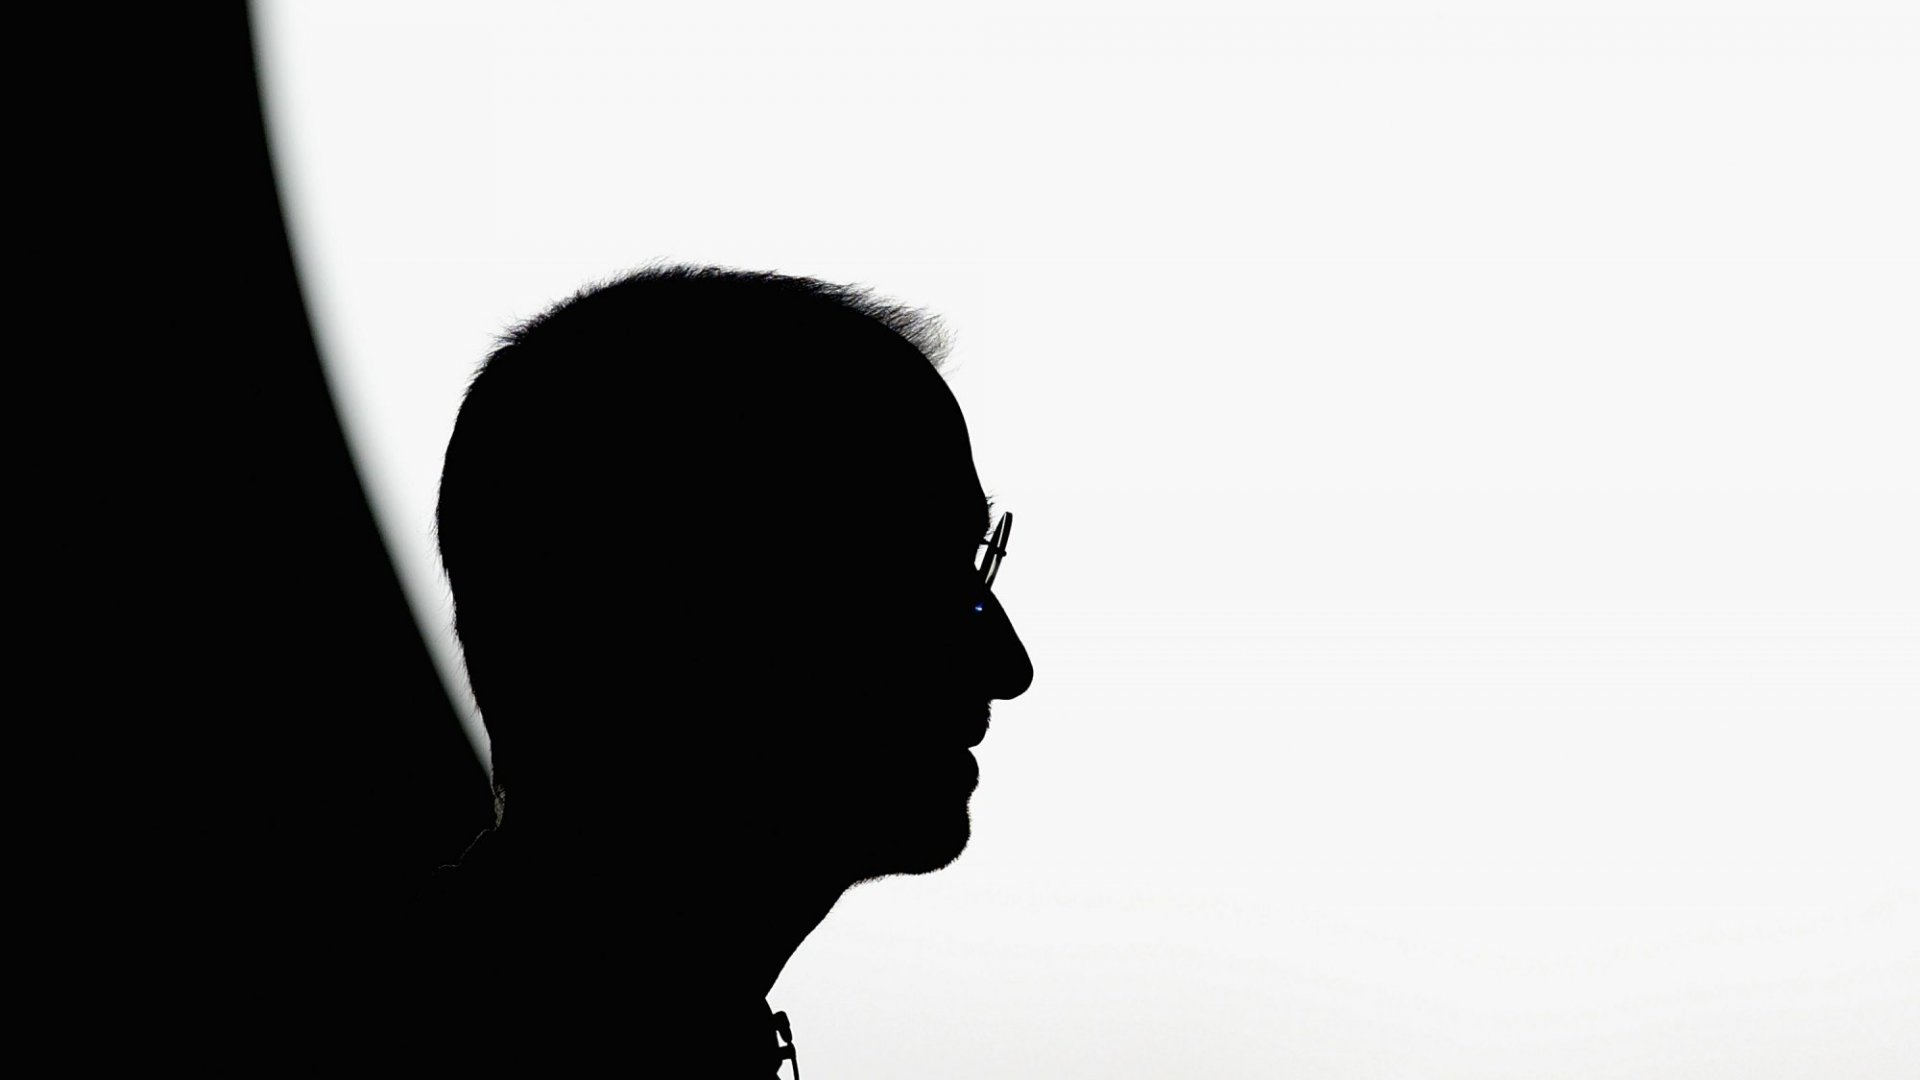 37 Years Ago, Steve Jobs Ran Apple's Most Amazing Ad. Here's the Story (It's Almost Been Forgotten)